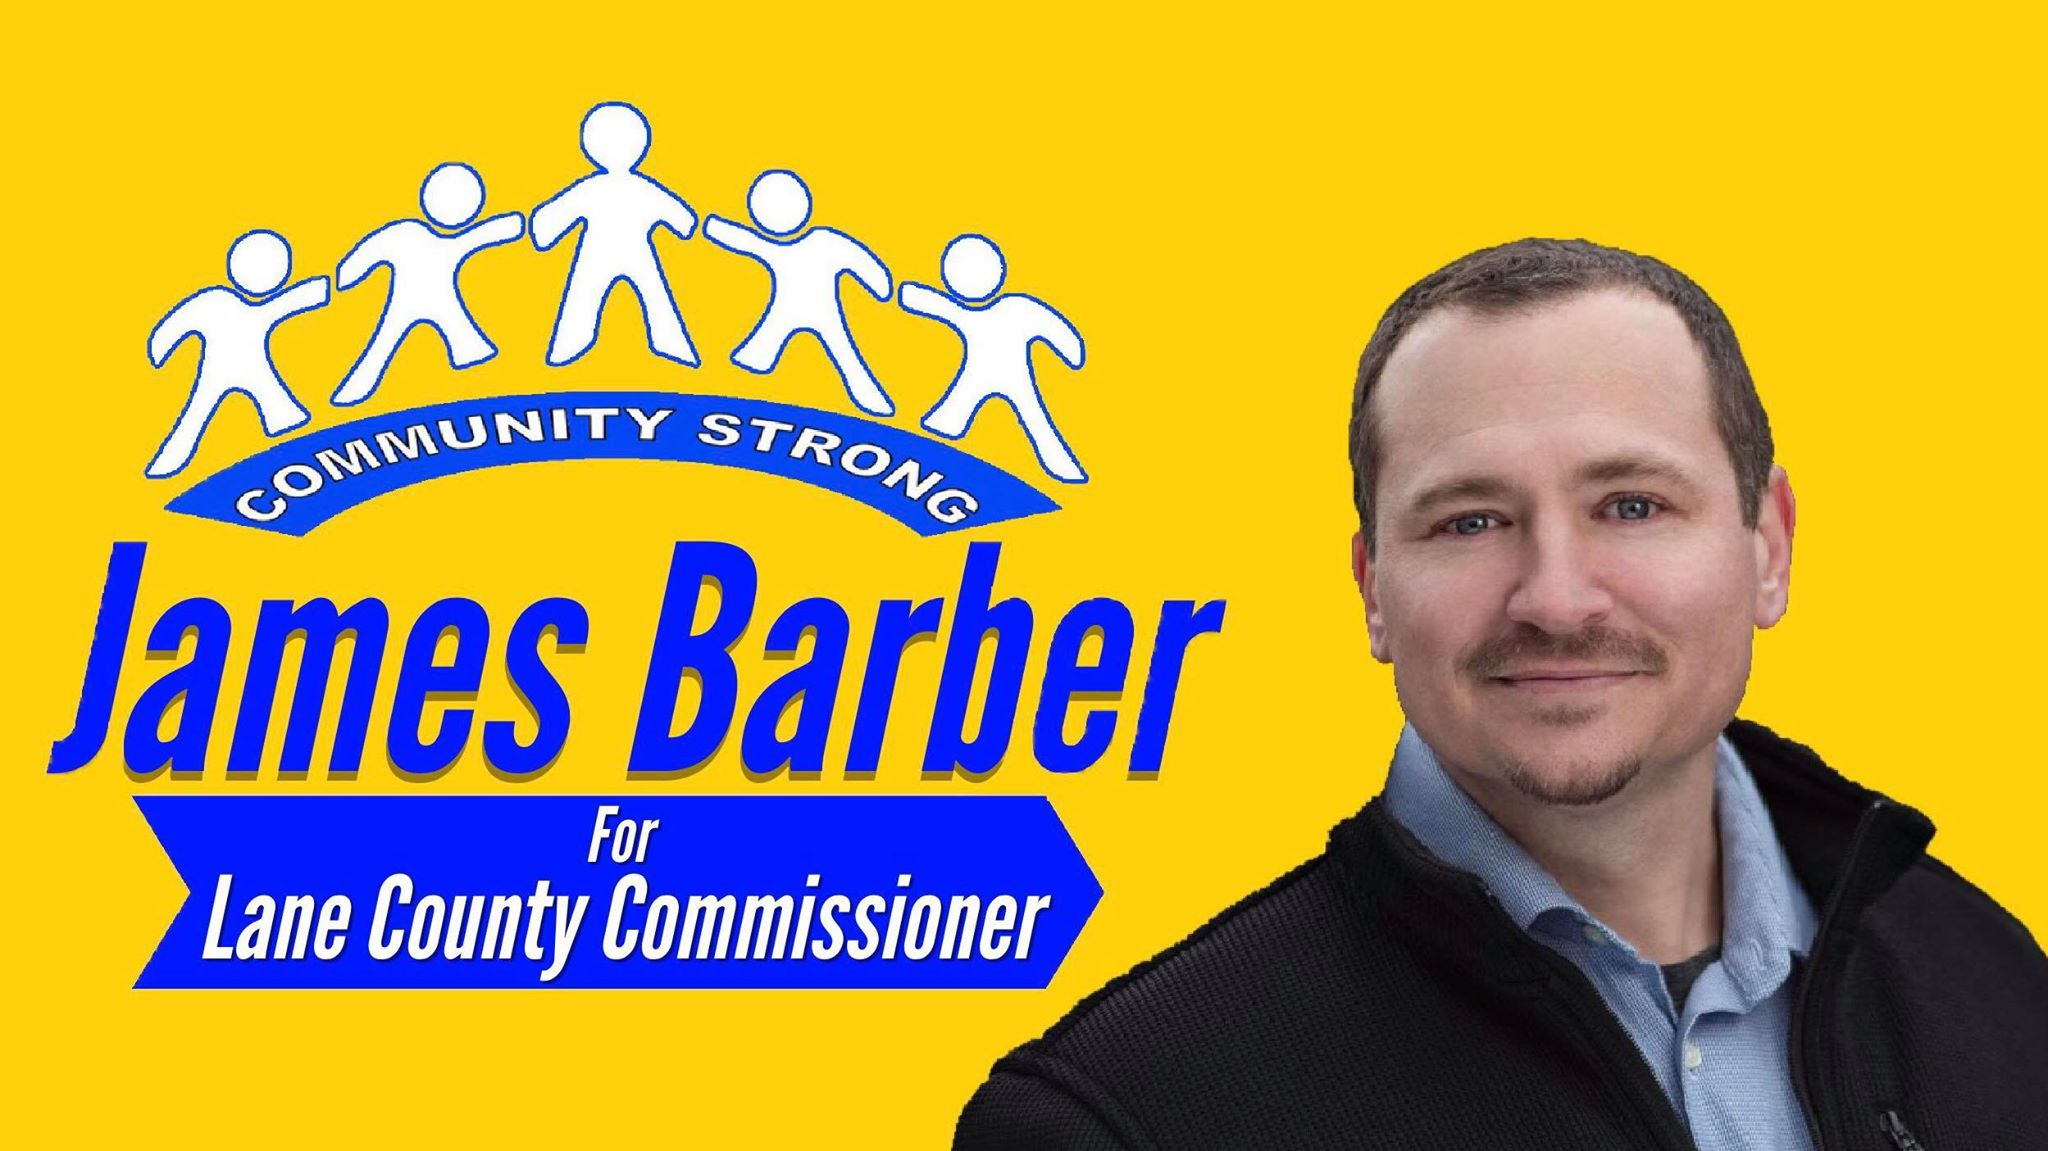 Donate today! Help elect James Barber as the next East Lane County Commissioner